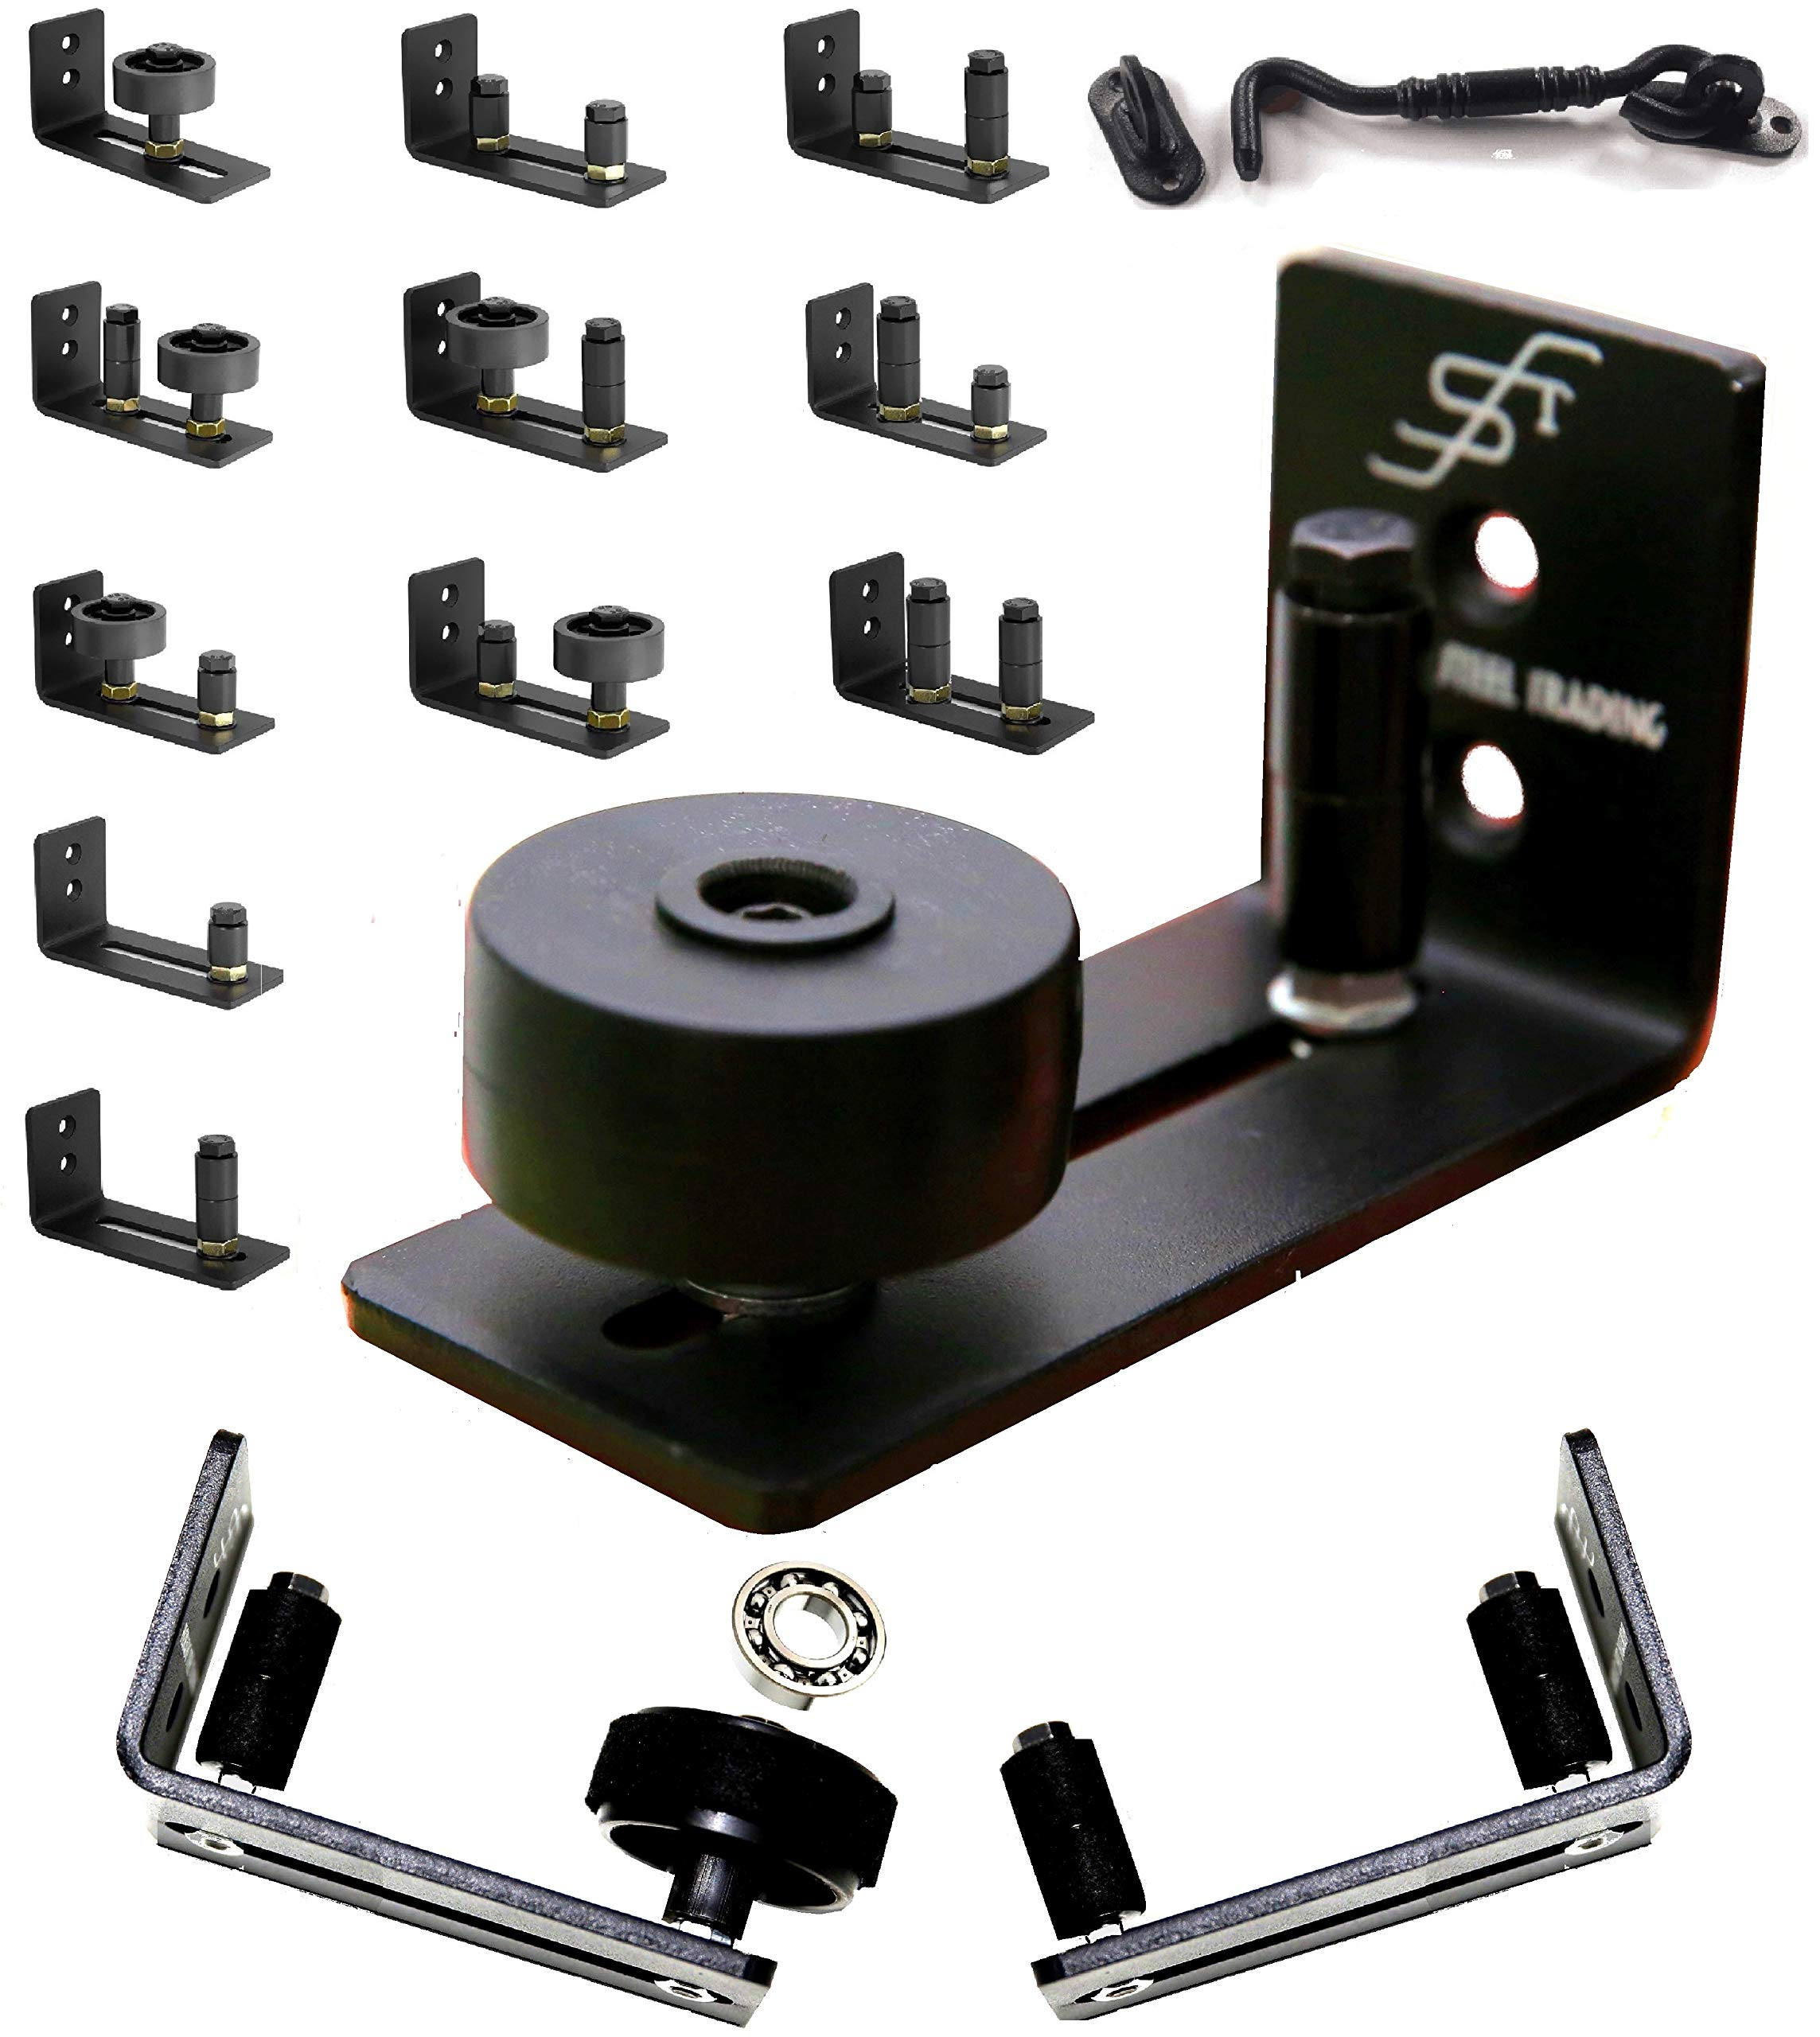 FLORADIS 11 SETUP OPTIONS BARN DOOR FLOOR GUIDE STAY ROLLER/ BALL BEARINGS ULTRA SMOOTH STOP HARDWARE KIT/ COMPLETELY FLUSH to GROUND/ THIN FULLY ADJUSTABLE WALL MOUNT BRACKET/ CABIN DOOR HOOK